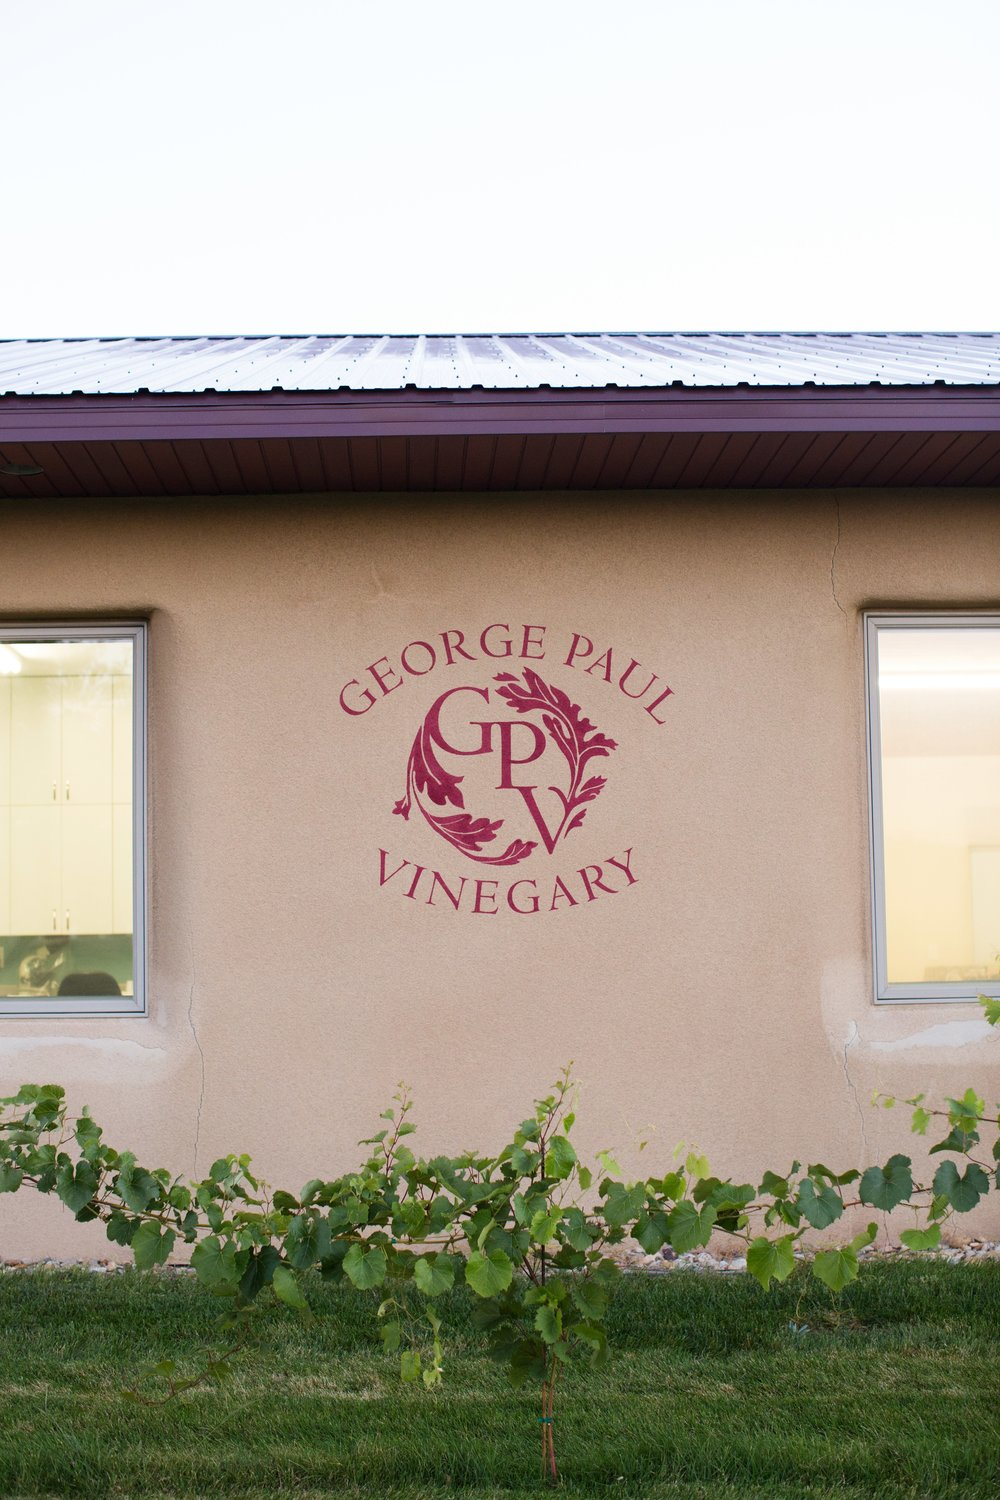 GPV logo painted on the stucco